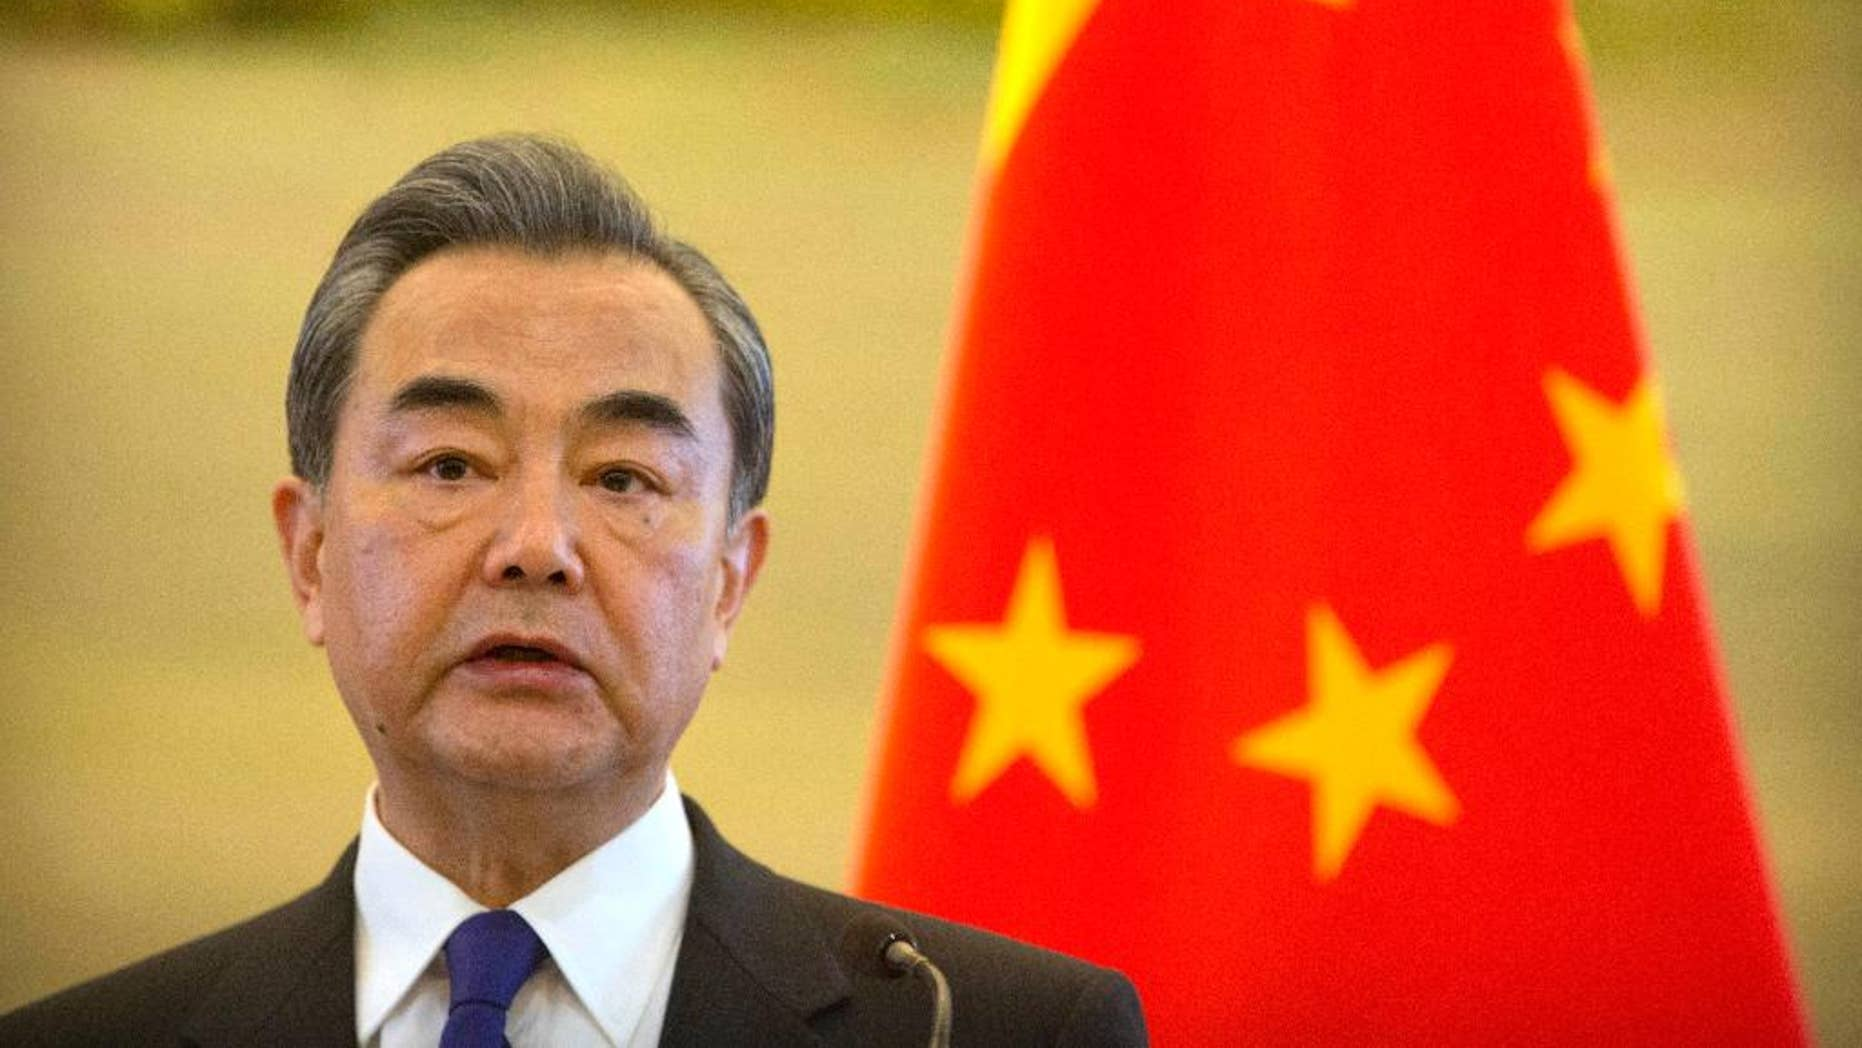 FILE - In this Thursday, April 13, 2017 file photo, Chinese Foreign Minister Wang Yi speaks during a joint press conference with the Palestinian Foreign Minister at the Ministry of Foreign Affairs in Beijing. Wang made a new appeal for calm on the Korean peninsula Tuesday, April 18, 2017, and said he believes the United States would prefer a diplomatic rather than military resolution to the standoff. (AP Photo/Mark Schiefelbein, File)